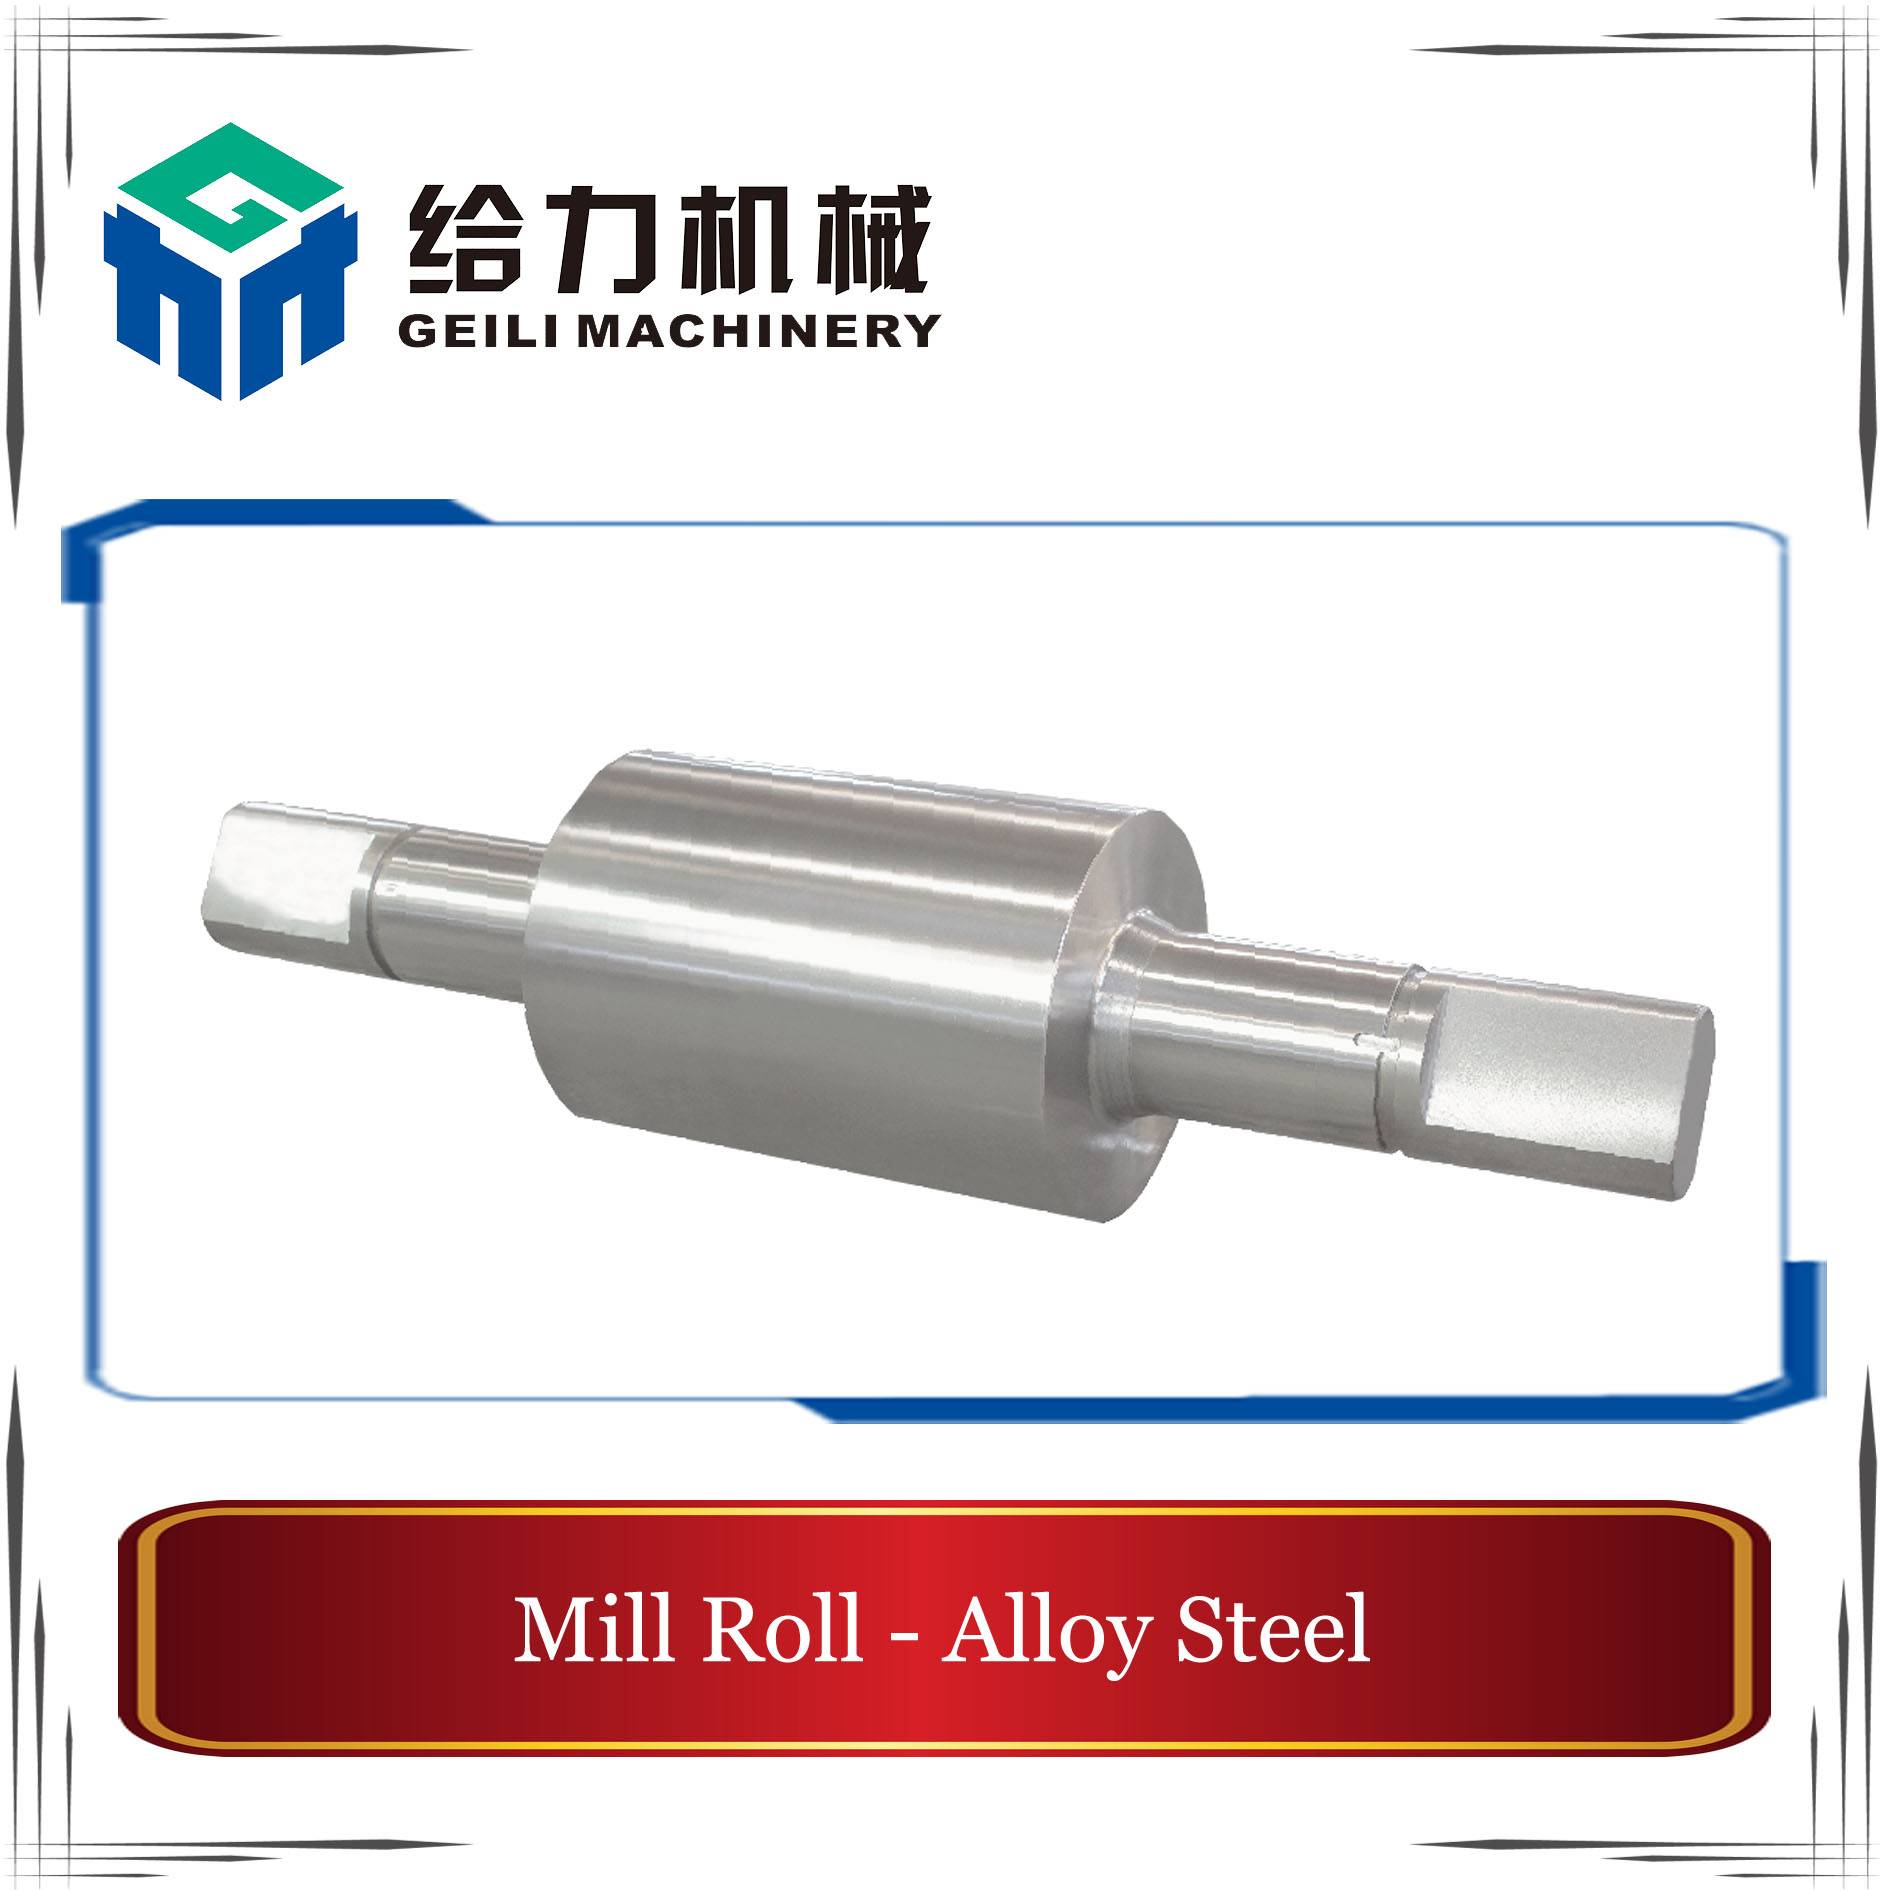 Alloy Steel Rolls